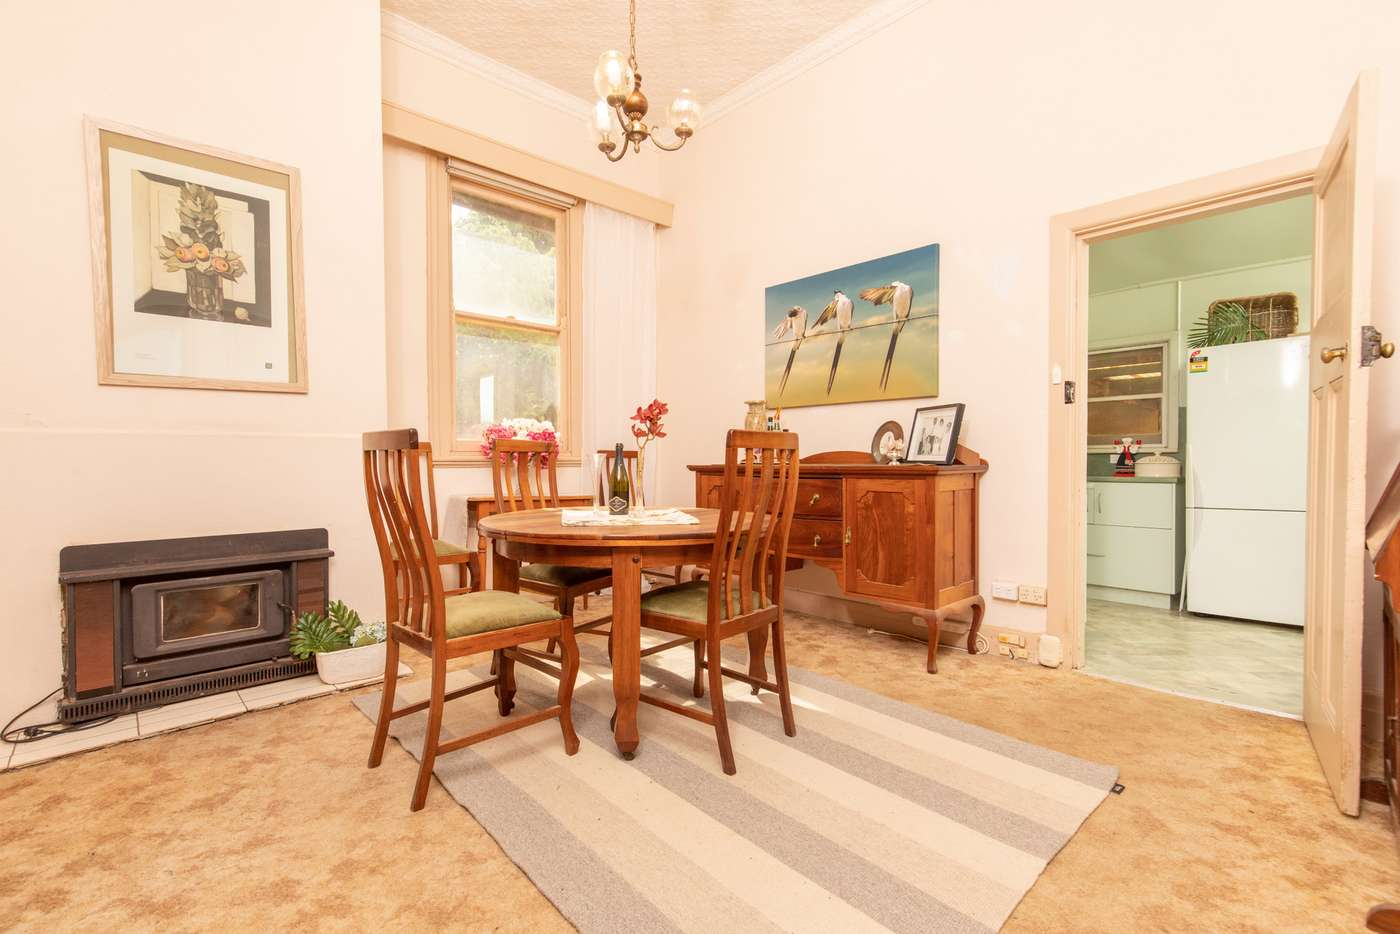 Fifth view of Homely house listing, 430 Mcedward Street, Birdwoodton VIC 3505